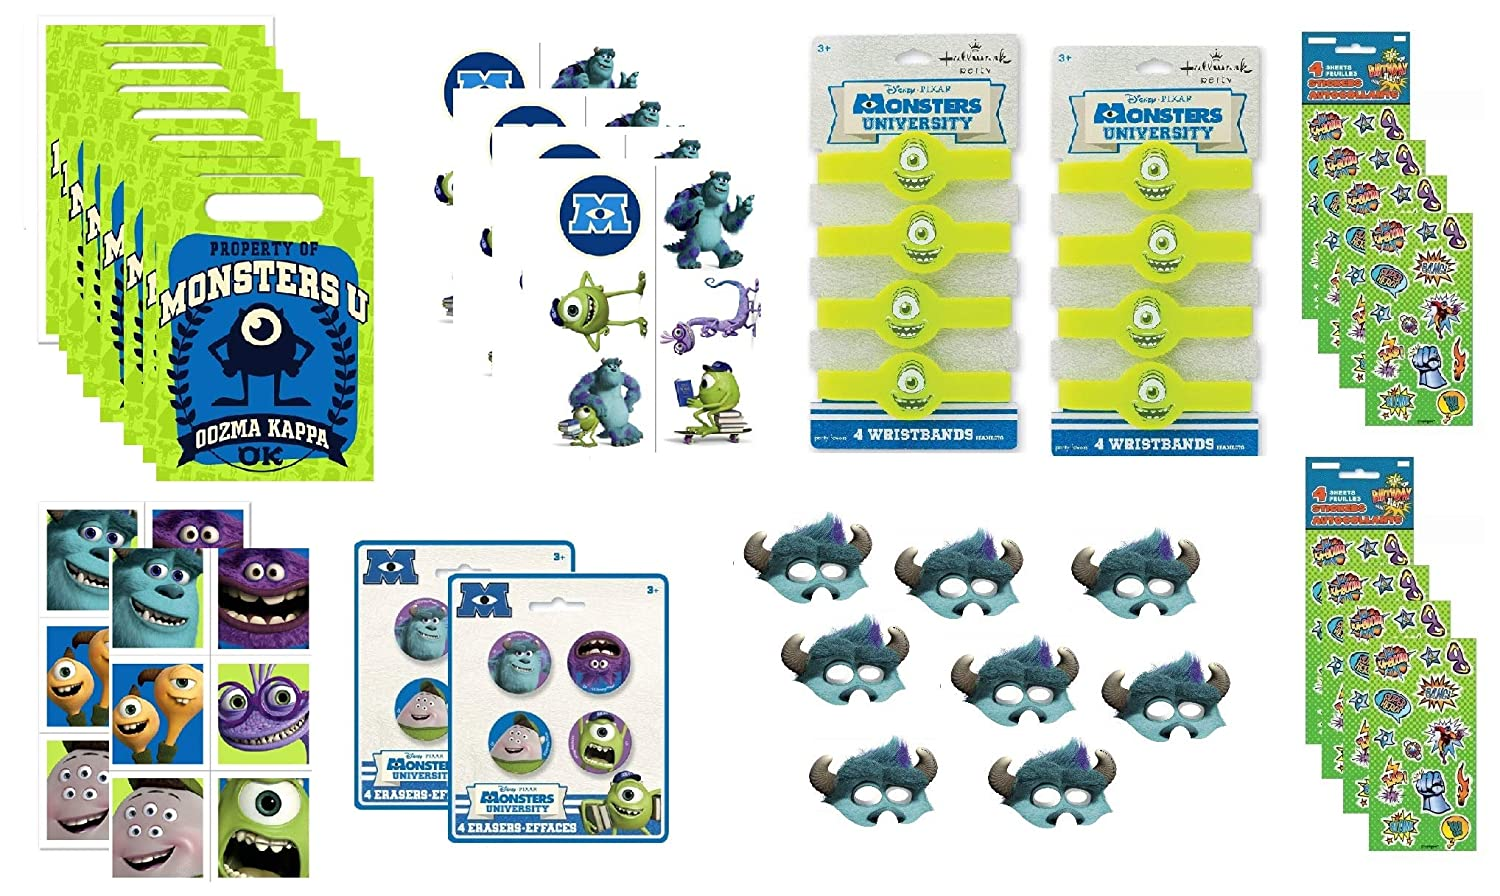 Amazon.com: Monsters University Juego de recuerdos de fiesta ...